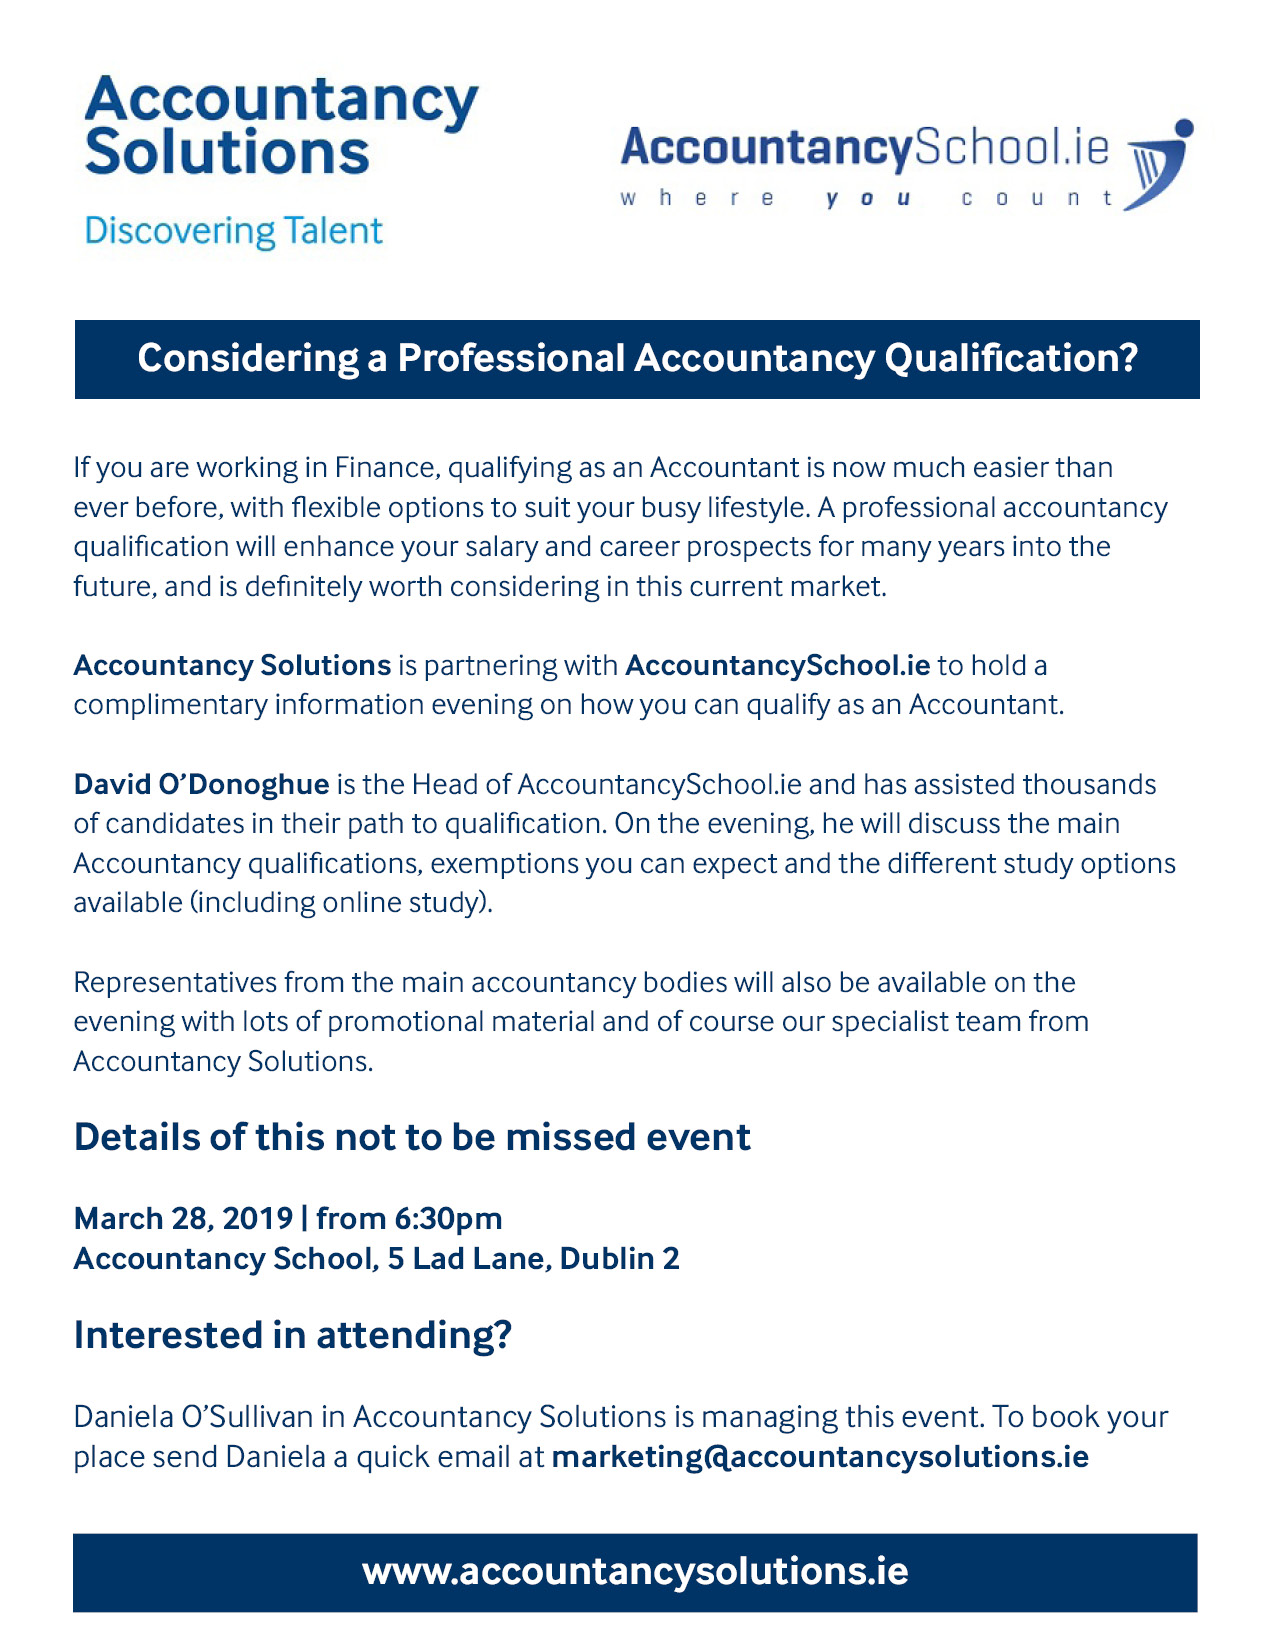 Considering a Professional Accountancy Qualification?